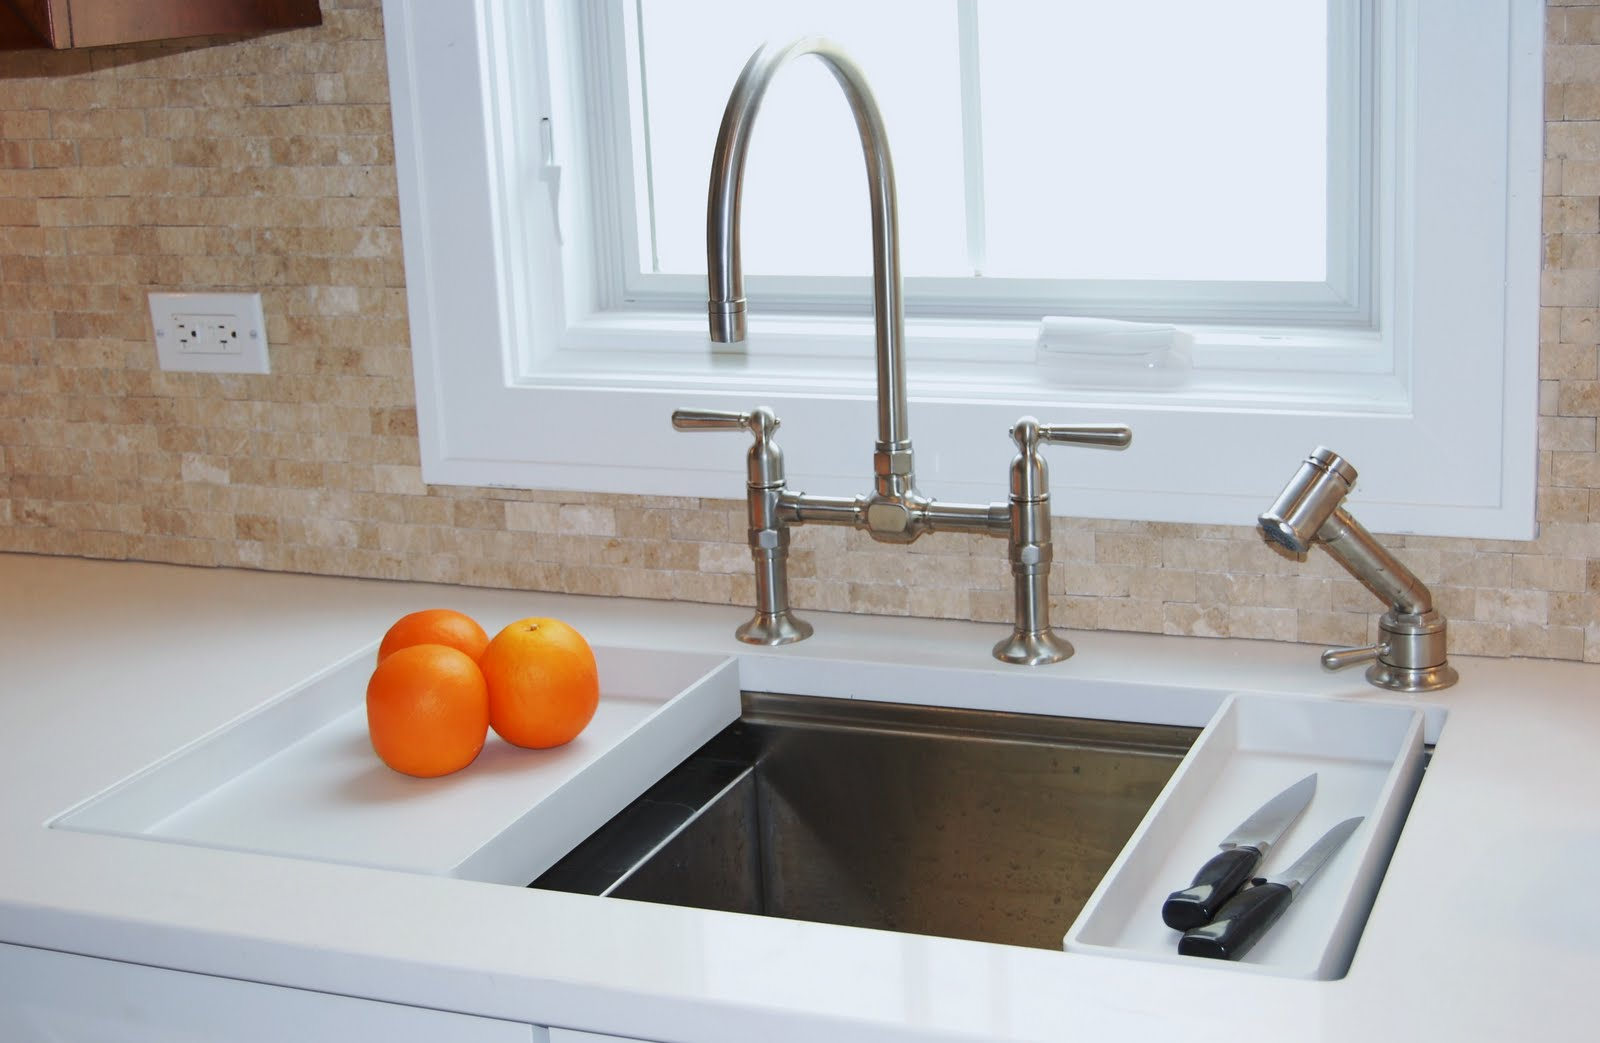 Kohler High Rise Faucet | Migrant Resource Network